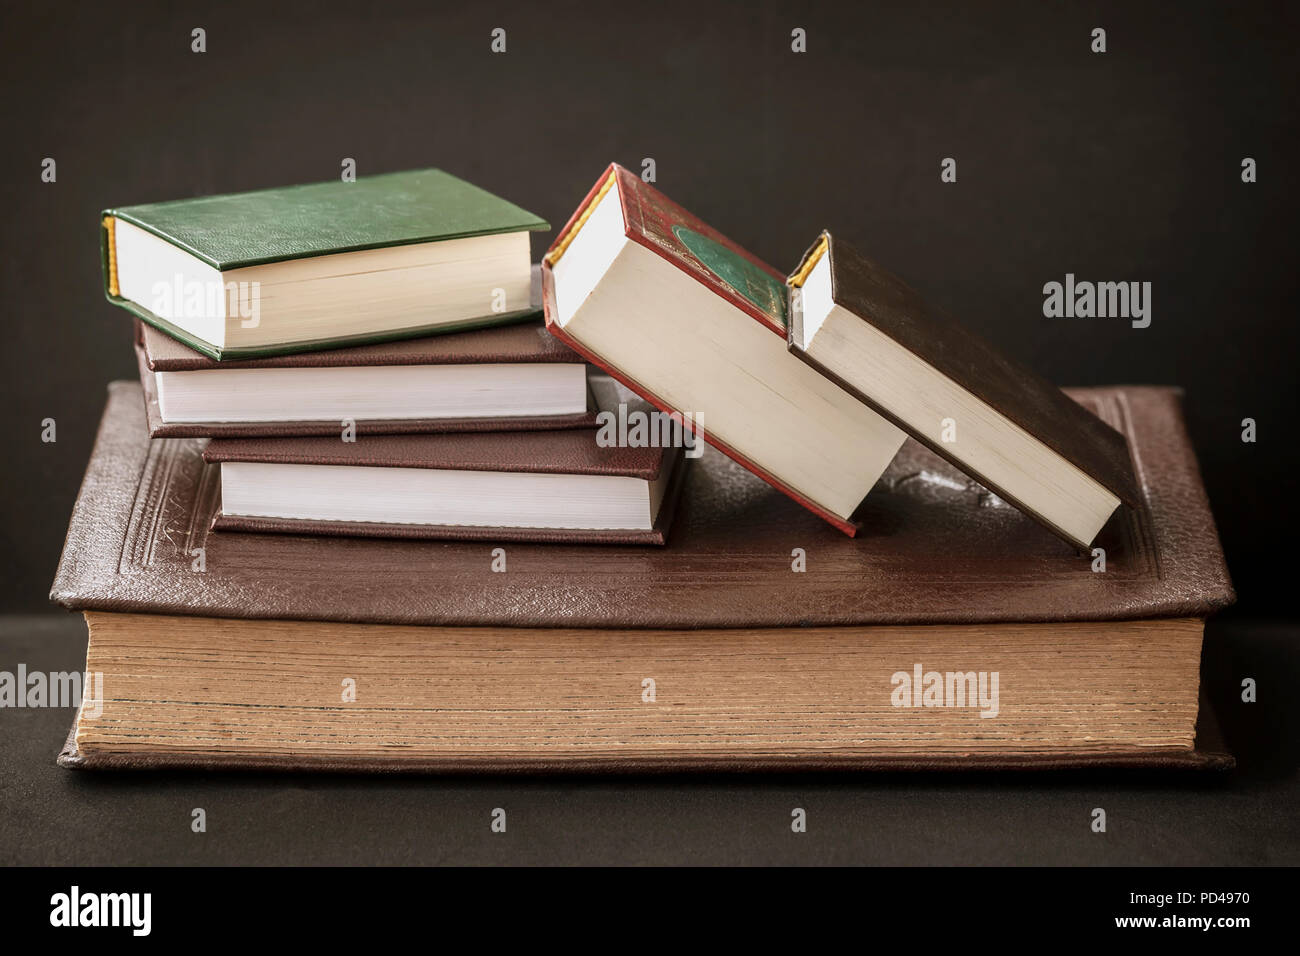 Several different sizes of books close up on a dark background - Stock Image